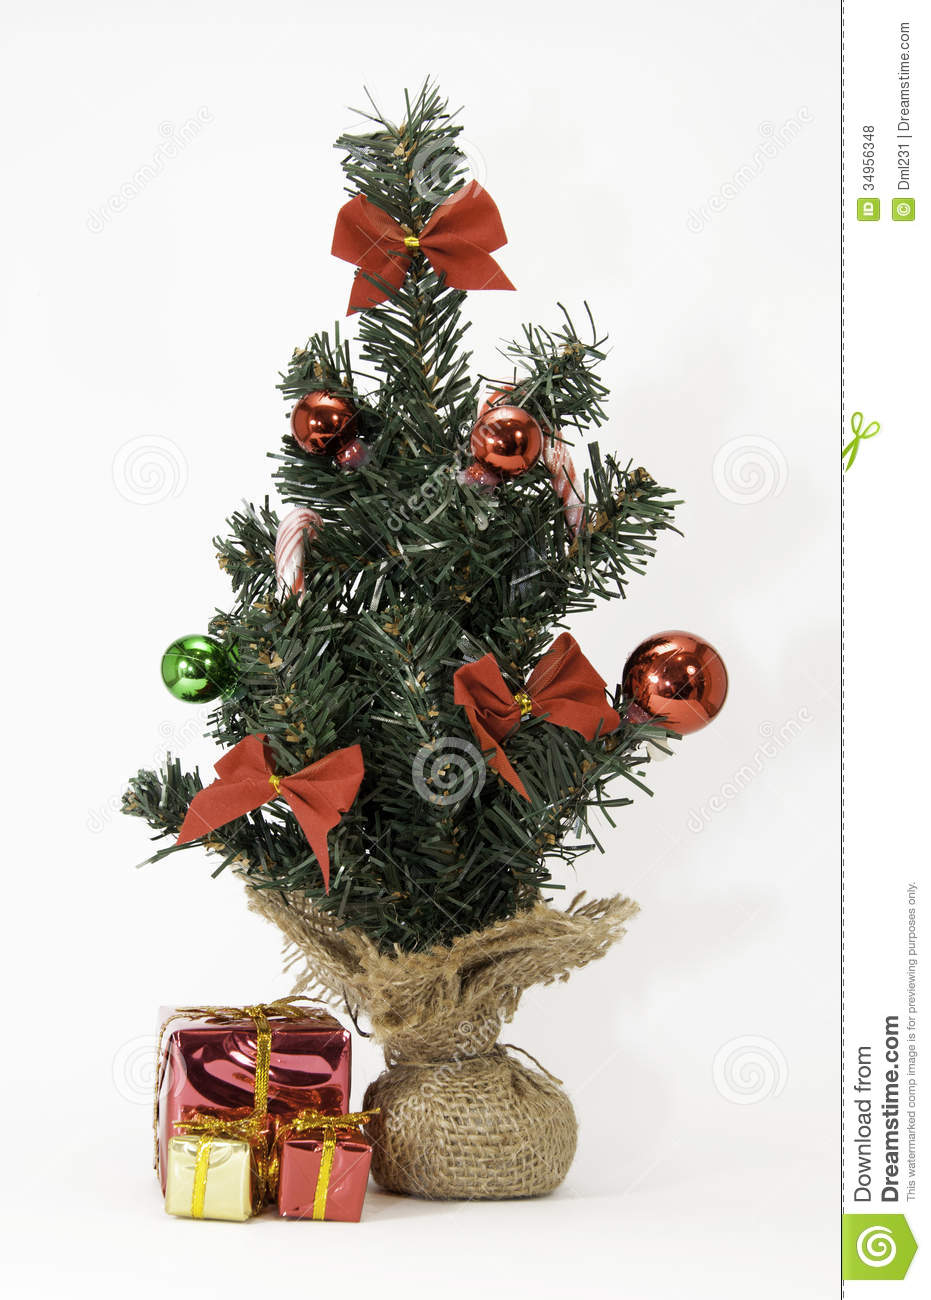 Tiny christmas tree ornaments - Mini Christmas Tree With Wrapped Gifts